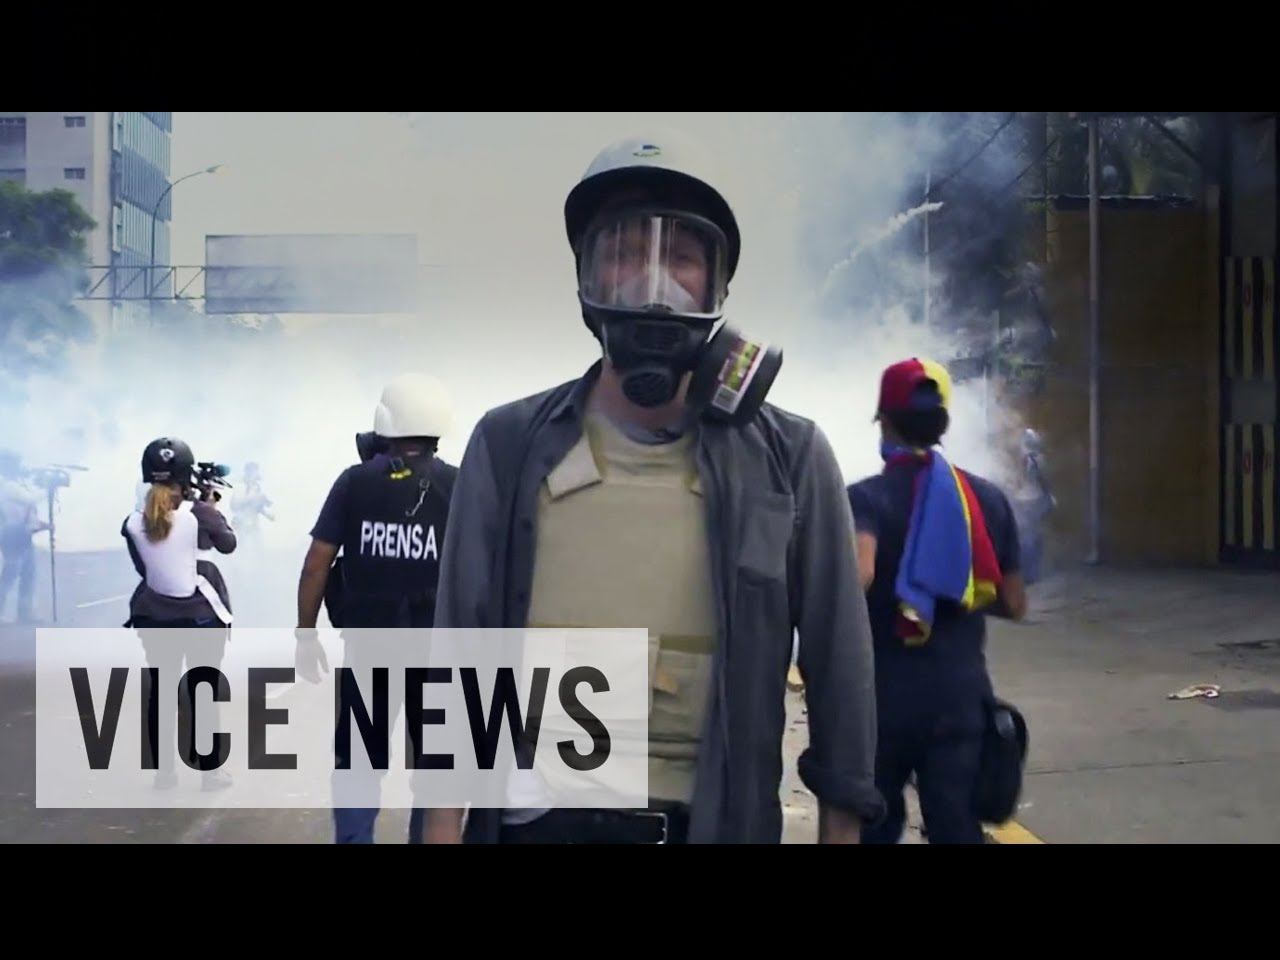 A poster advertising an episode of Vice News, where Vice journalists follow the Russian police. Graphic courtesy of IMDb